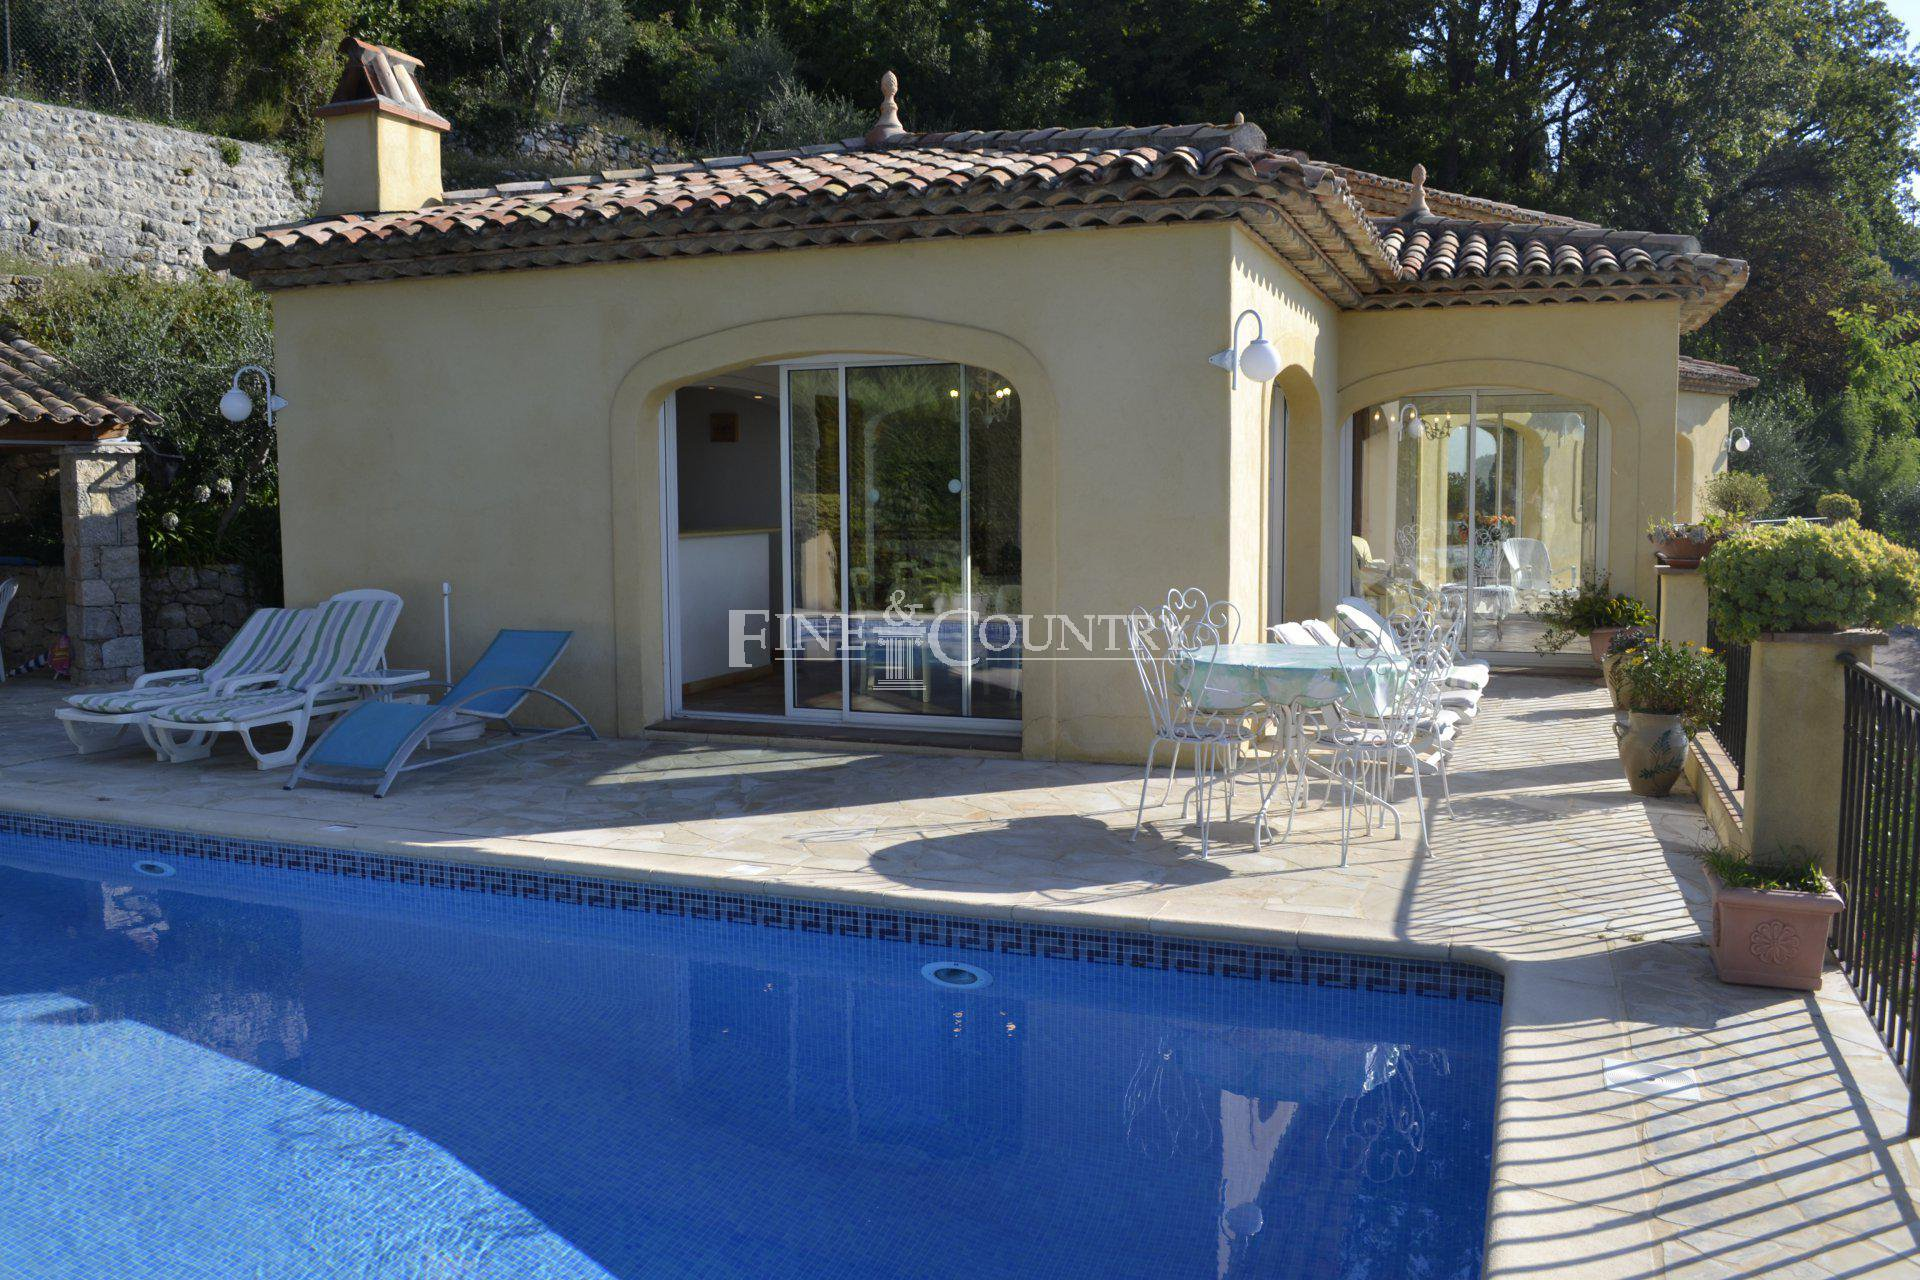 Swimming pool, pool house, pizza oven, 3 bedrooms and 2 bathrooms